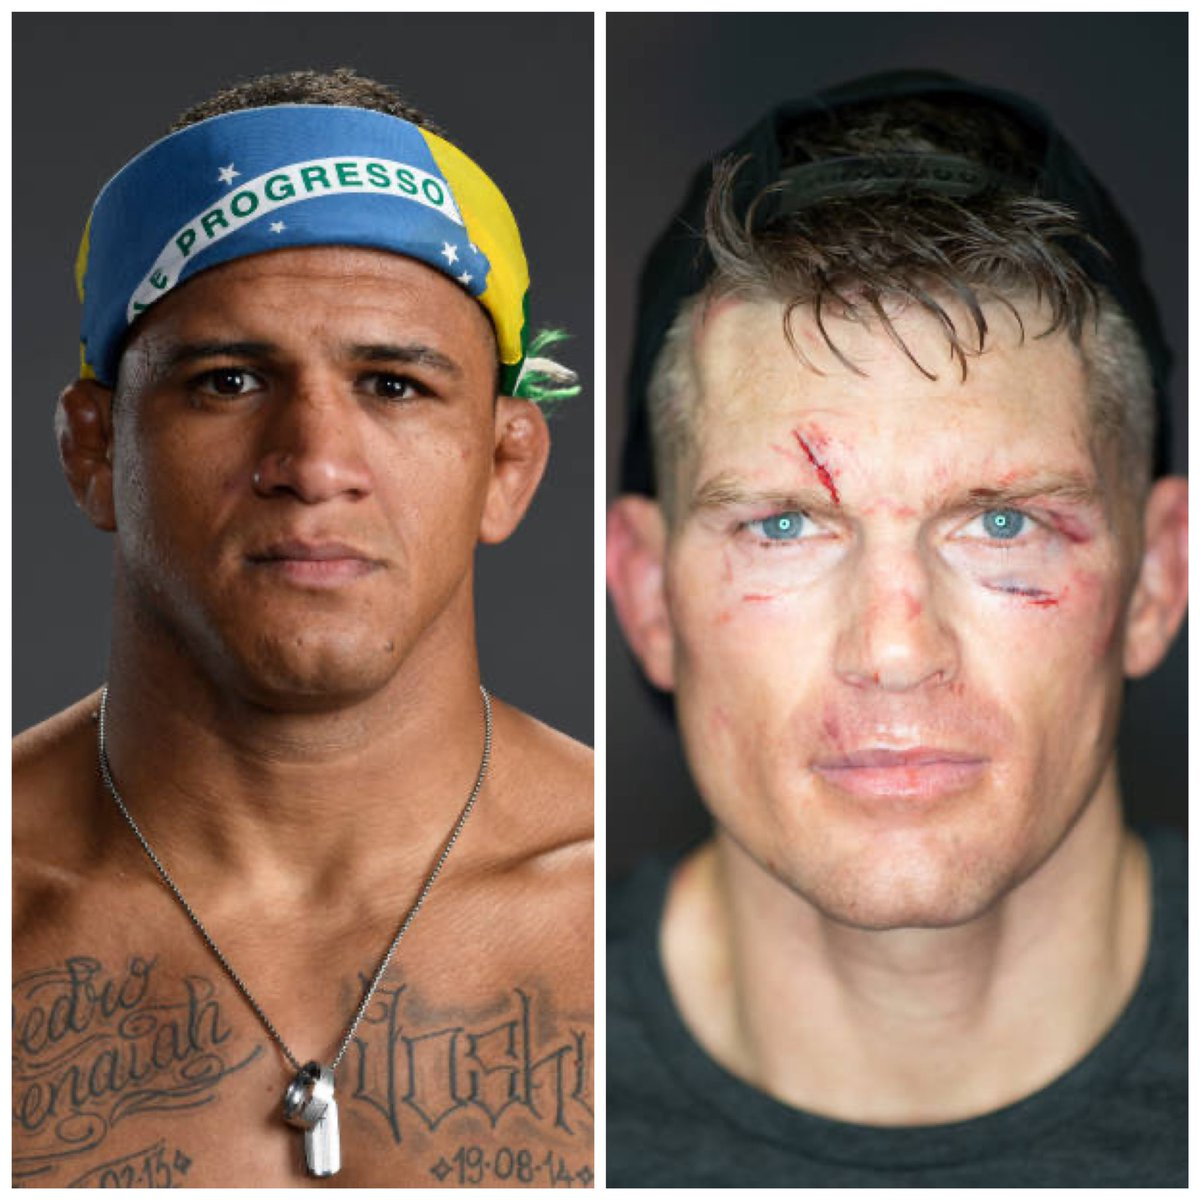 Two of the nicest (and baddest) dudes in the sport have agreed to throw down at UFC 264 on July 10. Gilbert Burns (@GilbertDurinho) vs. Stephen Thompson (@WonderboyMMA) has been verbally agreed to, per Dana White (@danawhite). https://t.co/Lv5uEsxqRb